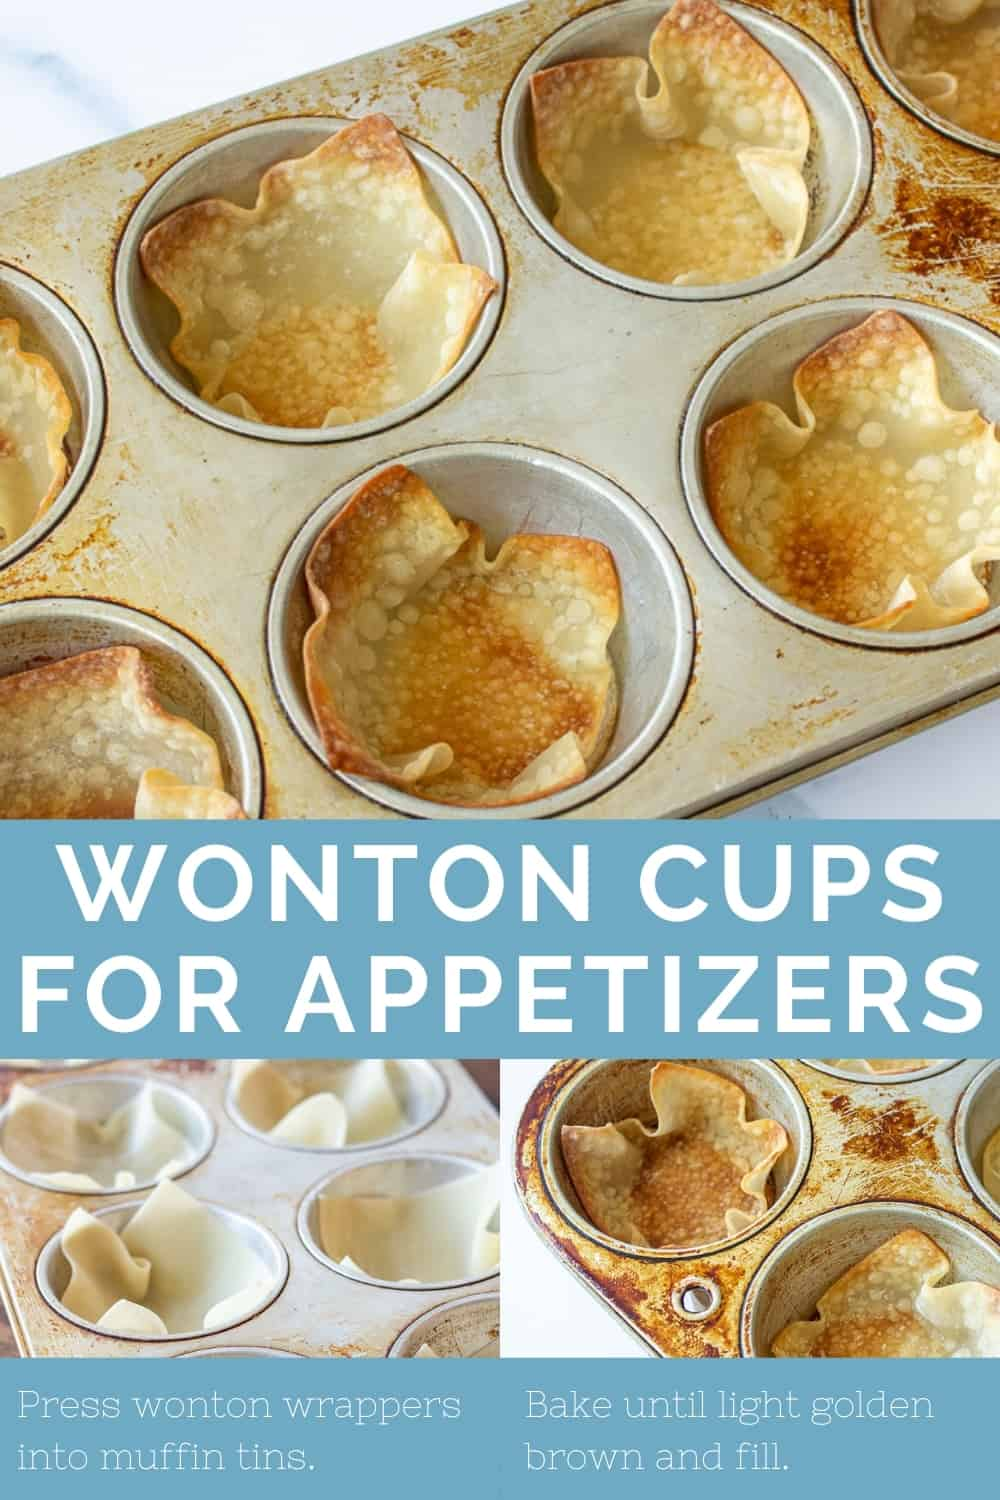 three photos of unbaked and baked wonton wrappers in a muffin pan